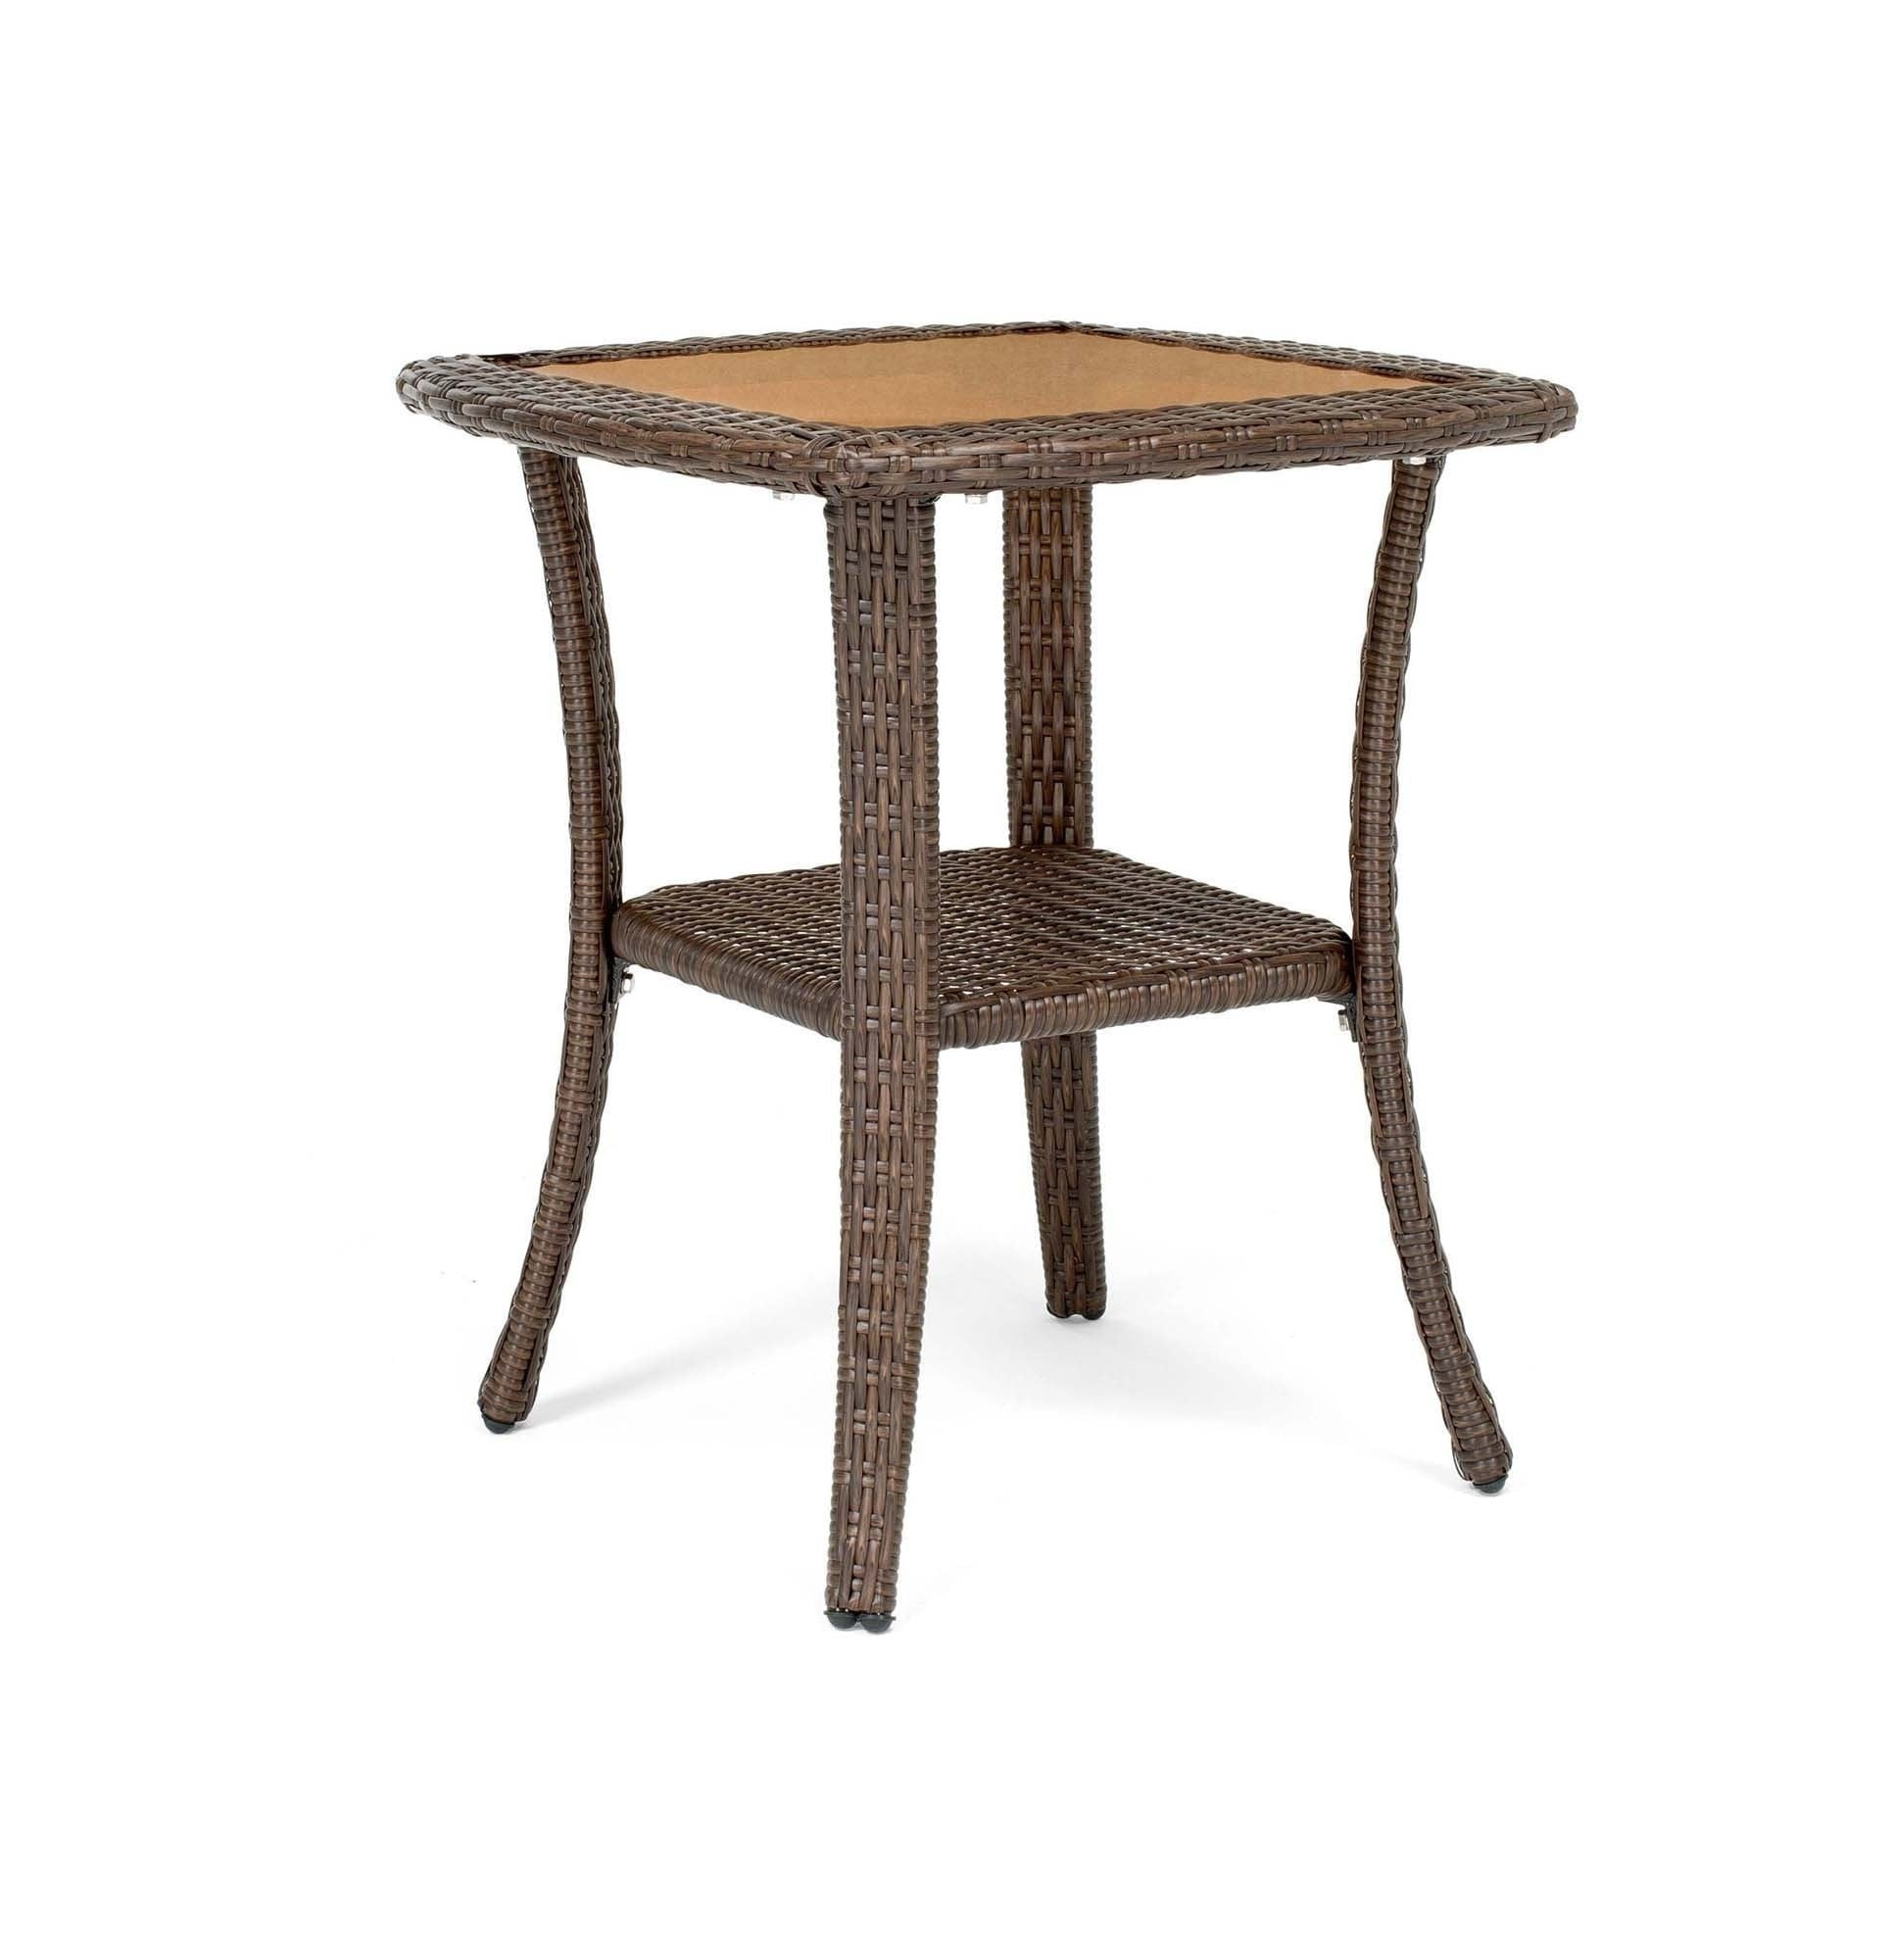 Sawyer Patio Side Table La Z Boy Outdoor